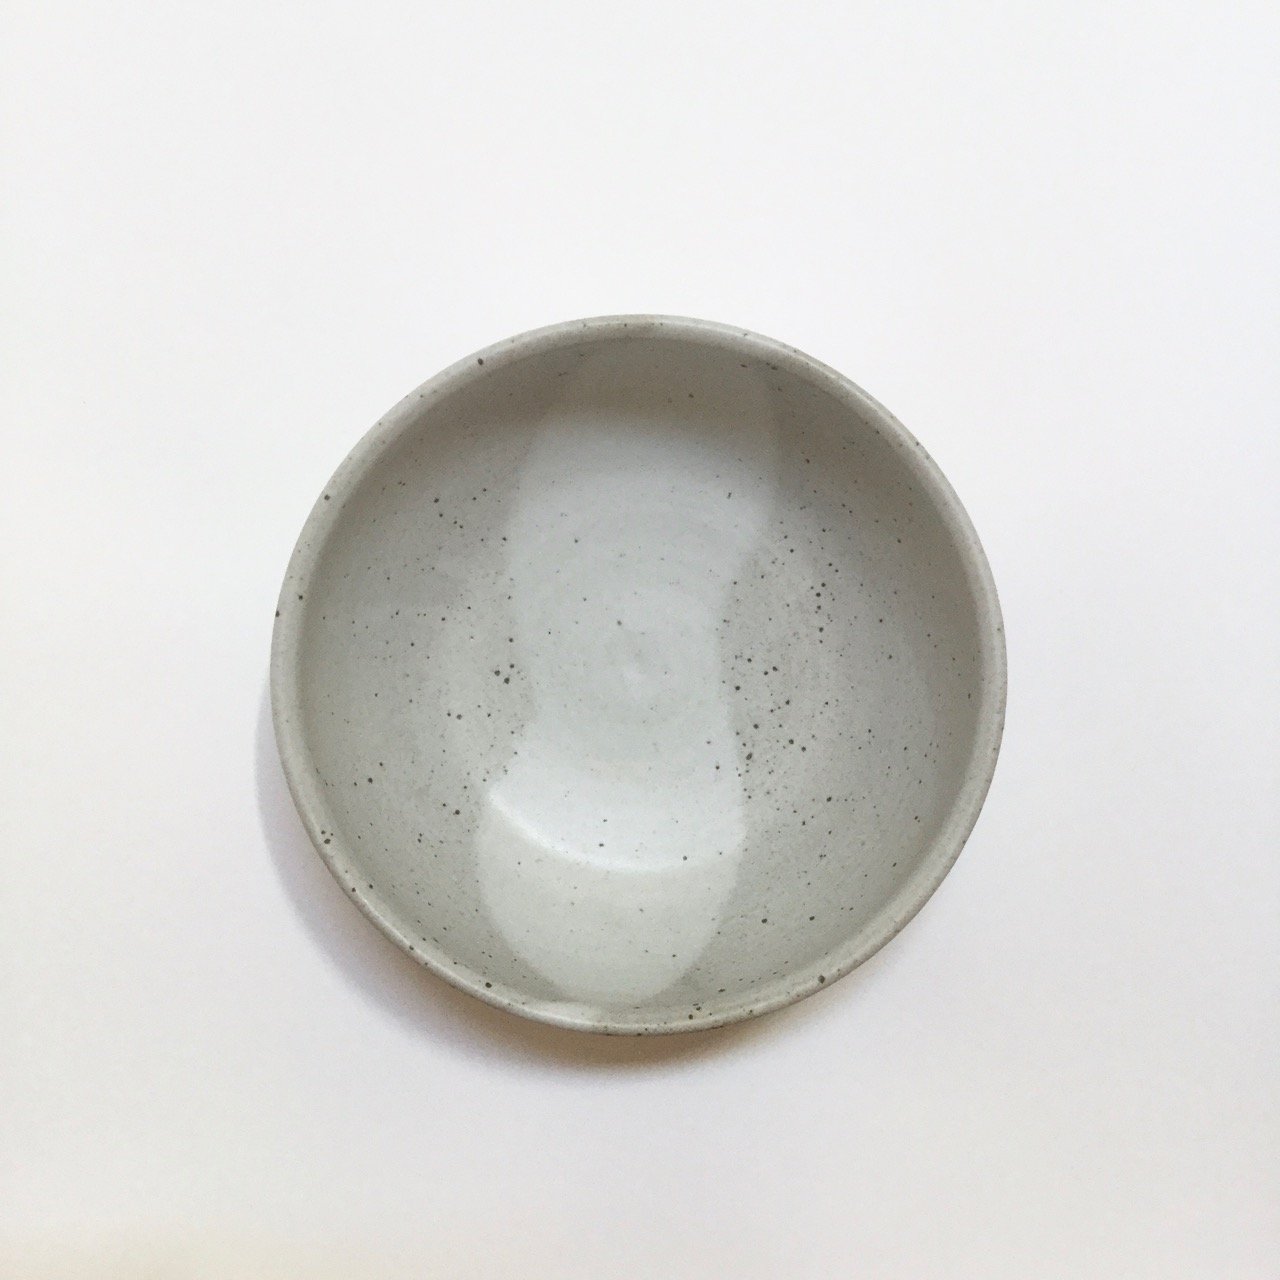 1054 Small serving bowl top (1).jpg